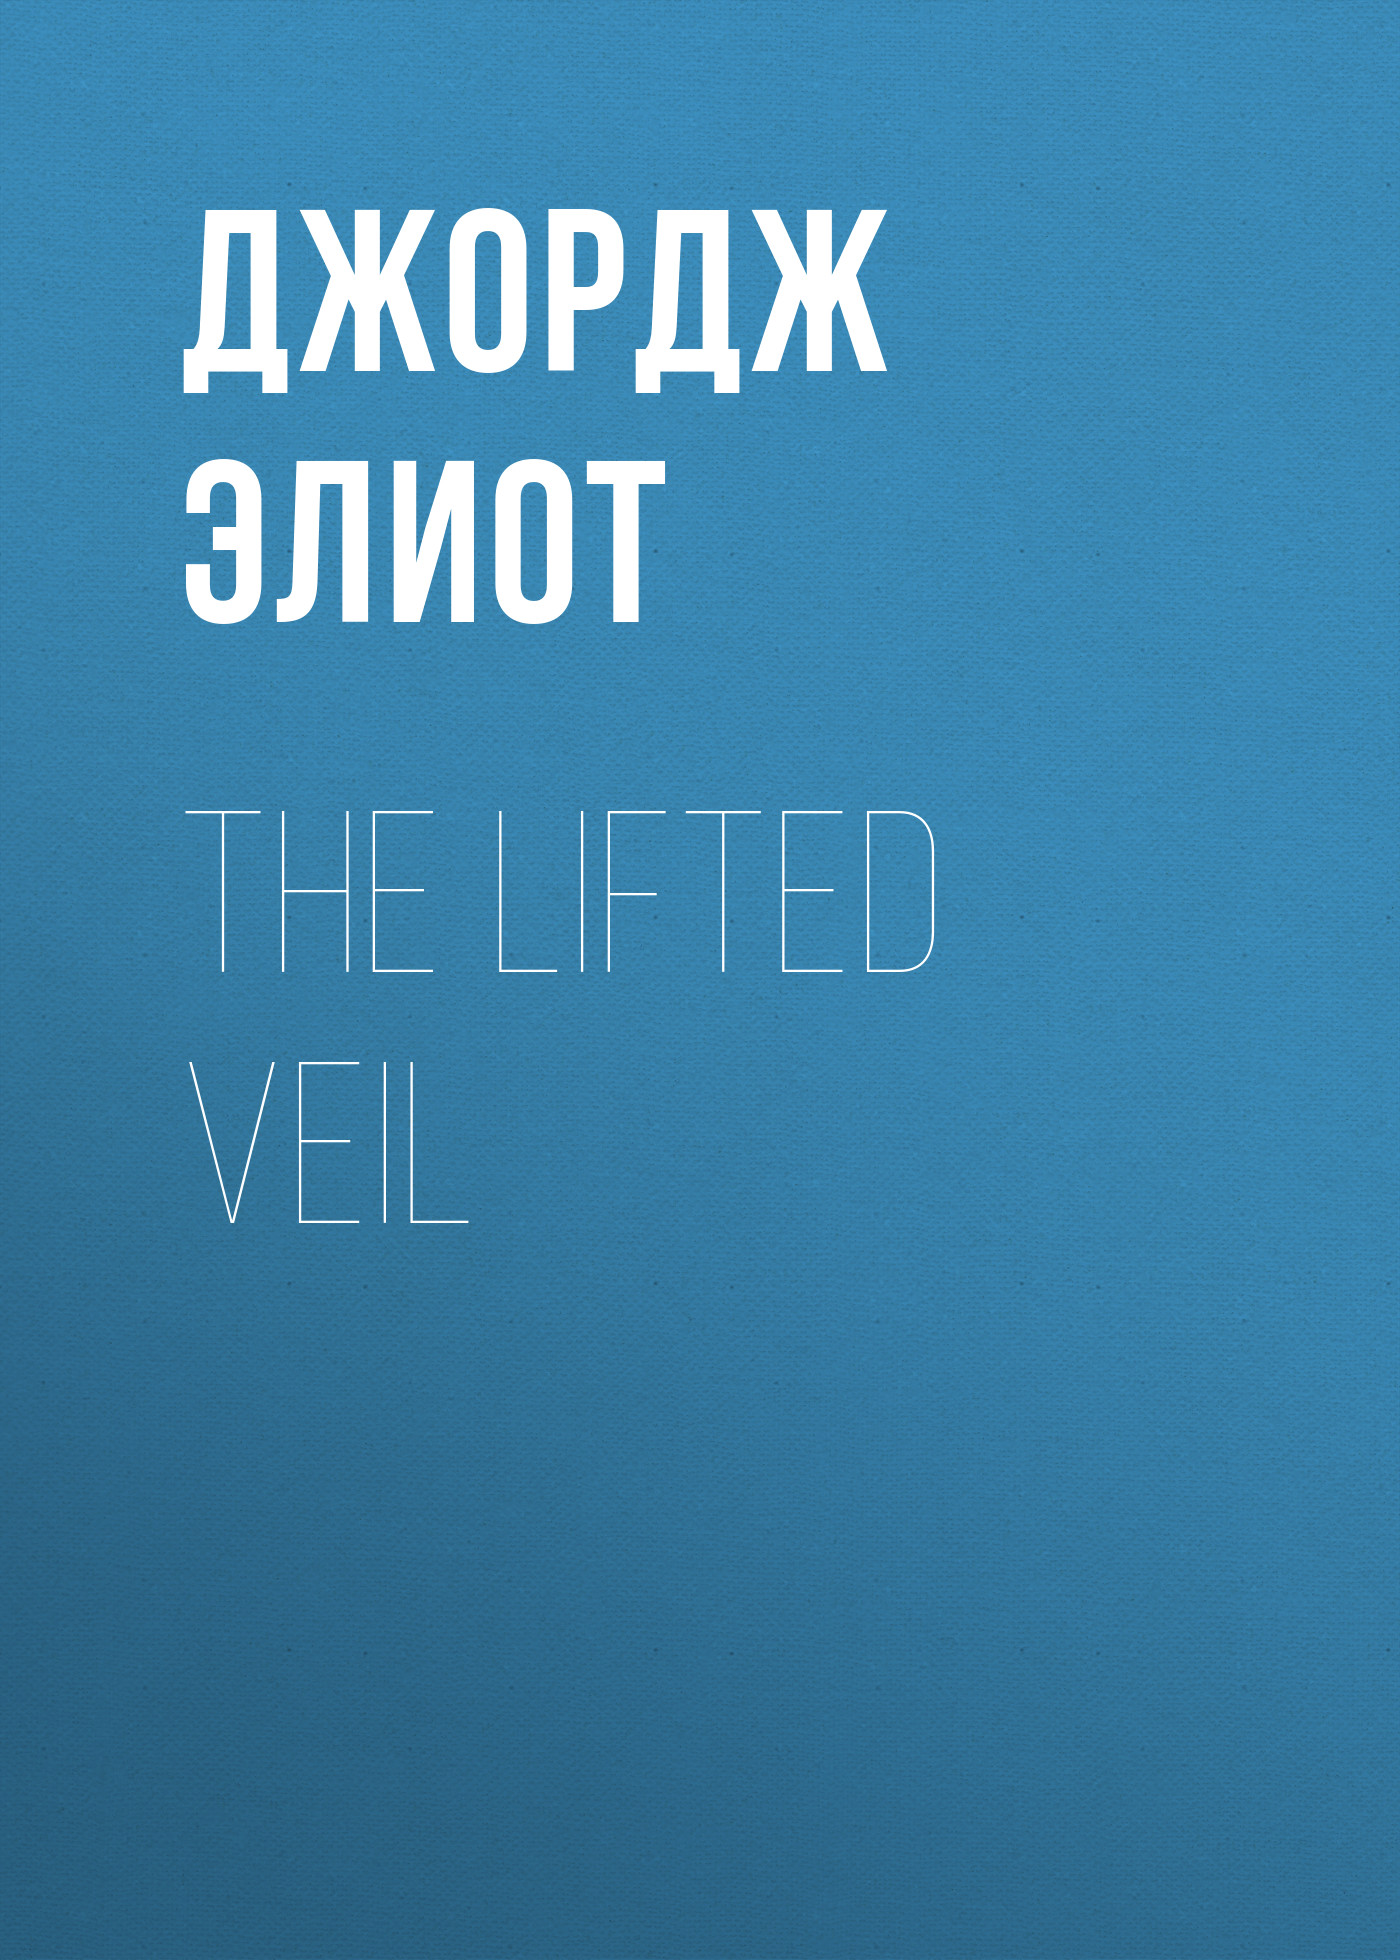 Джордж Элиот The Lifted Veil джордж элиот brother jacob